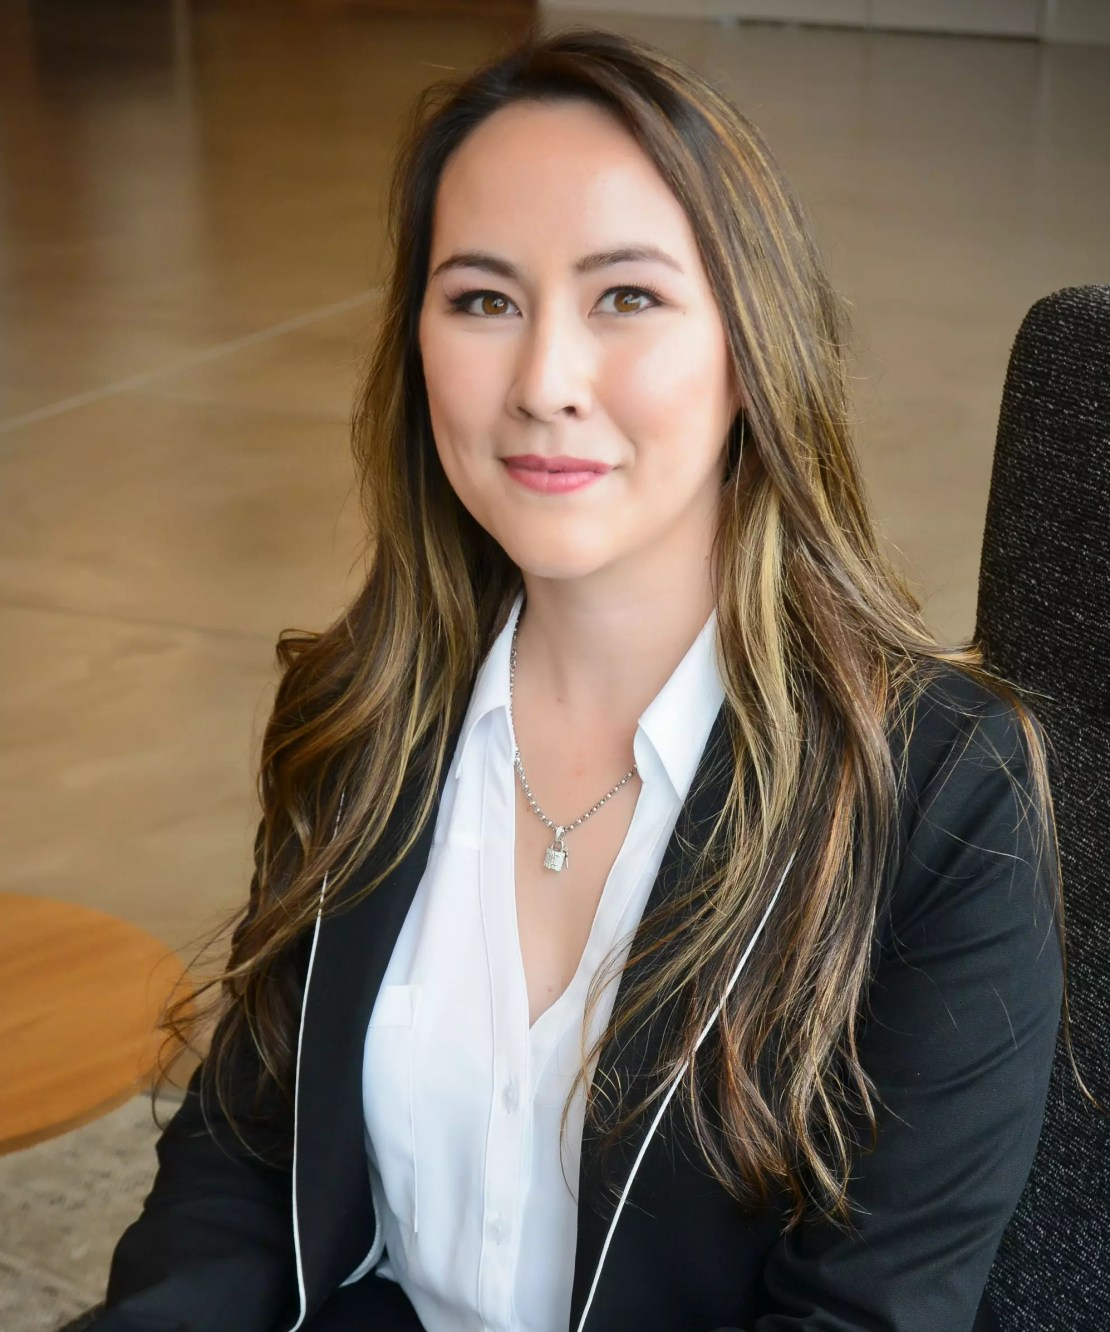 Sonya Tien, Tien Law Firm, Raleigh car accident lawyer, charlotte car accident lawyer, nyc car accident lawyer, best lawyer in nc, best lawyer in nyc